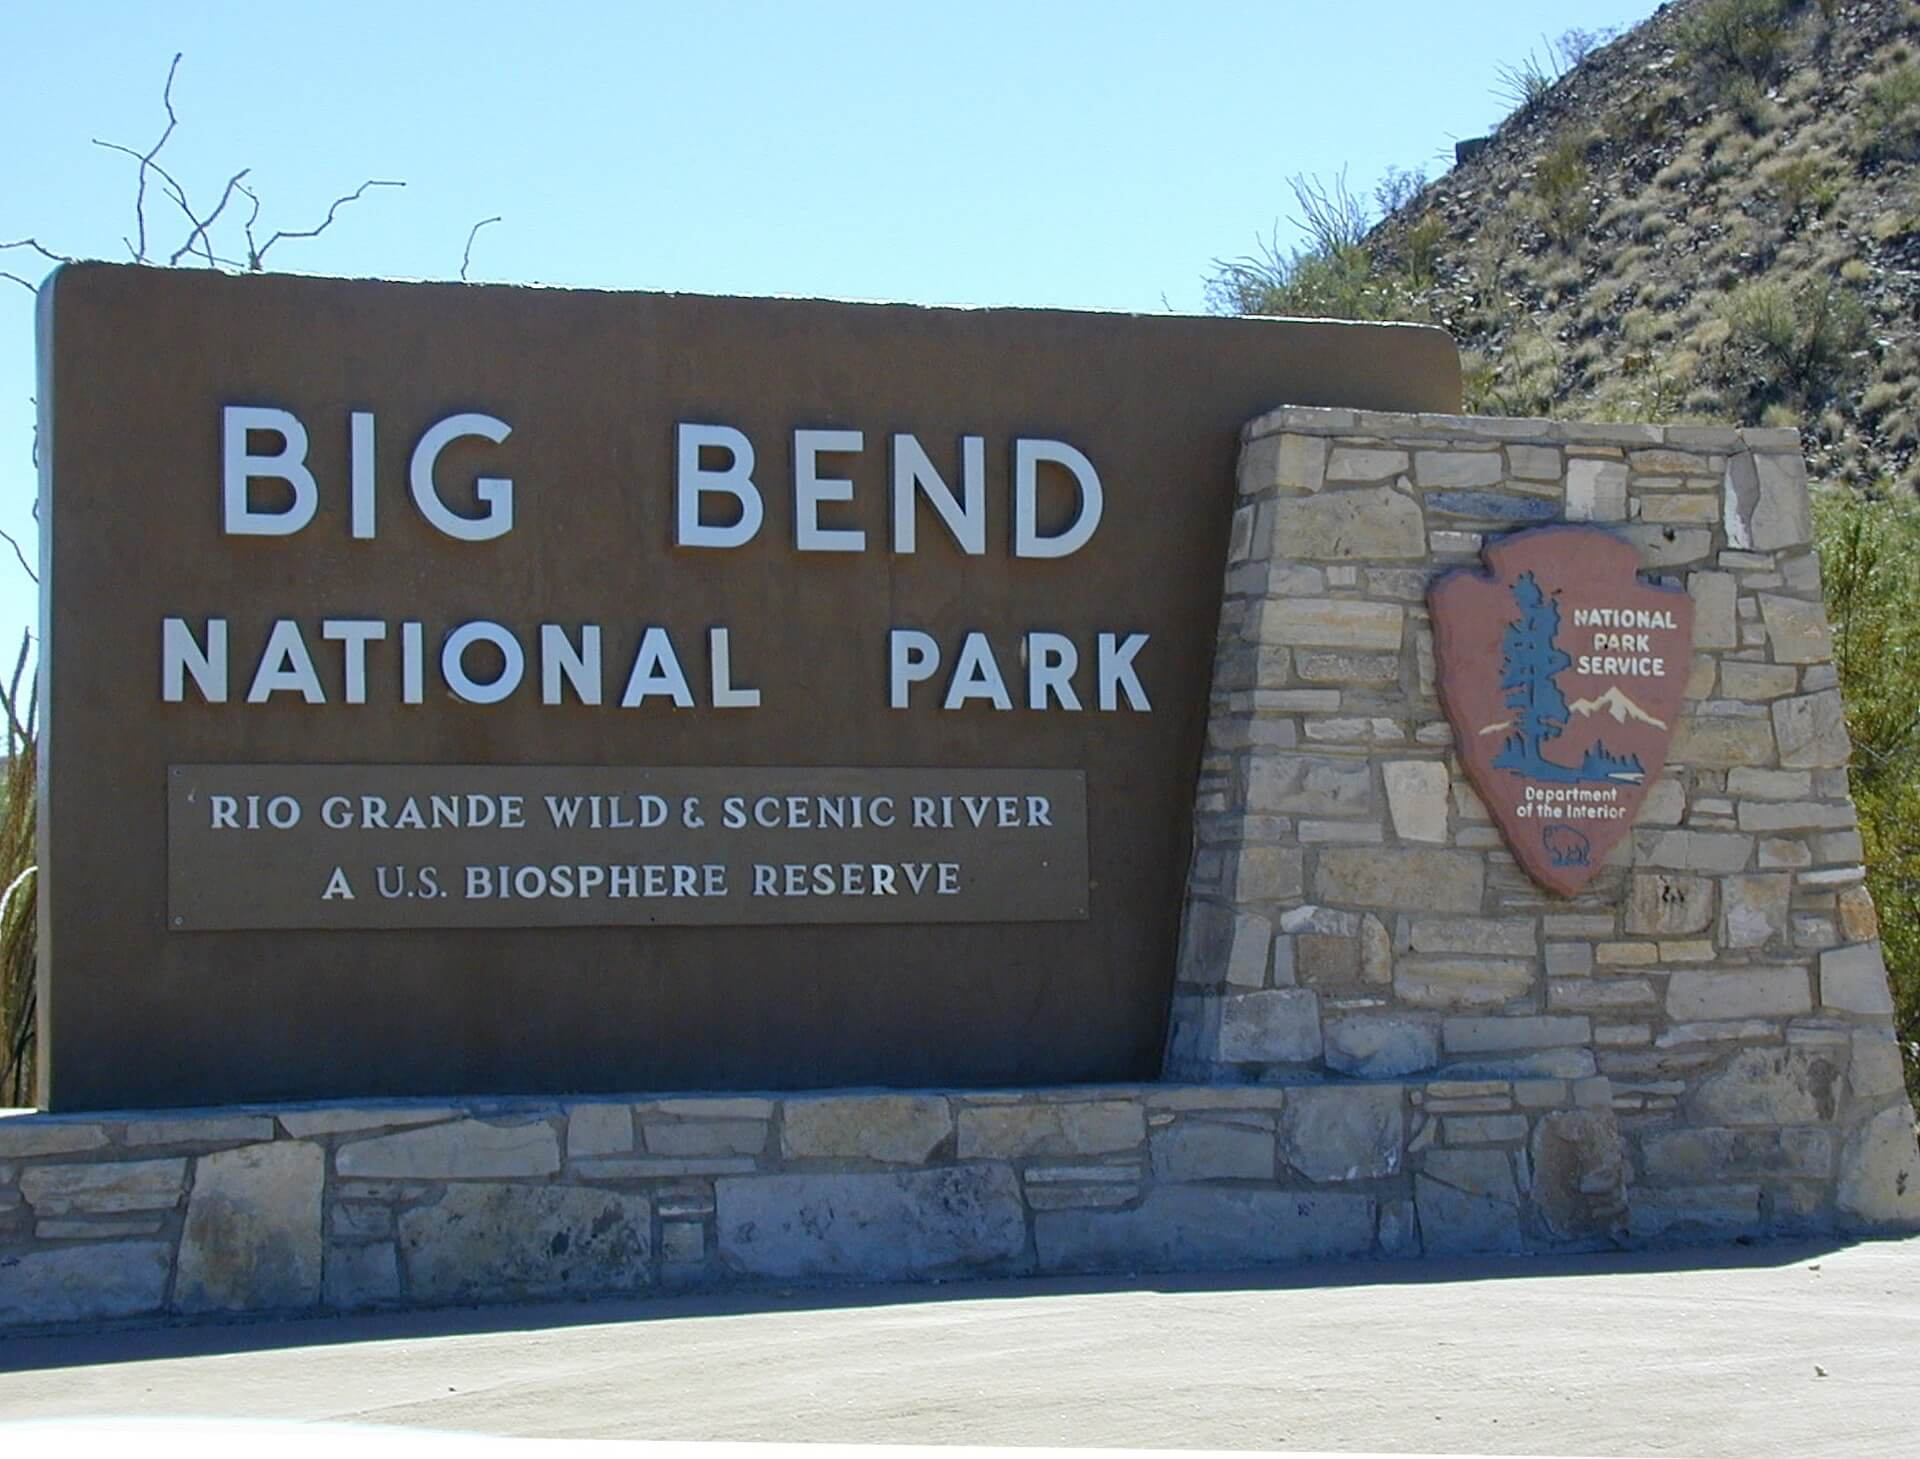 An NPS sign of the Big Bend National Park